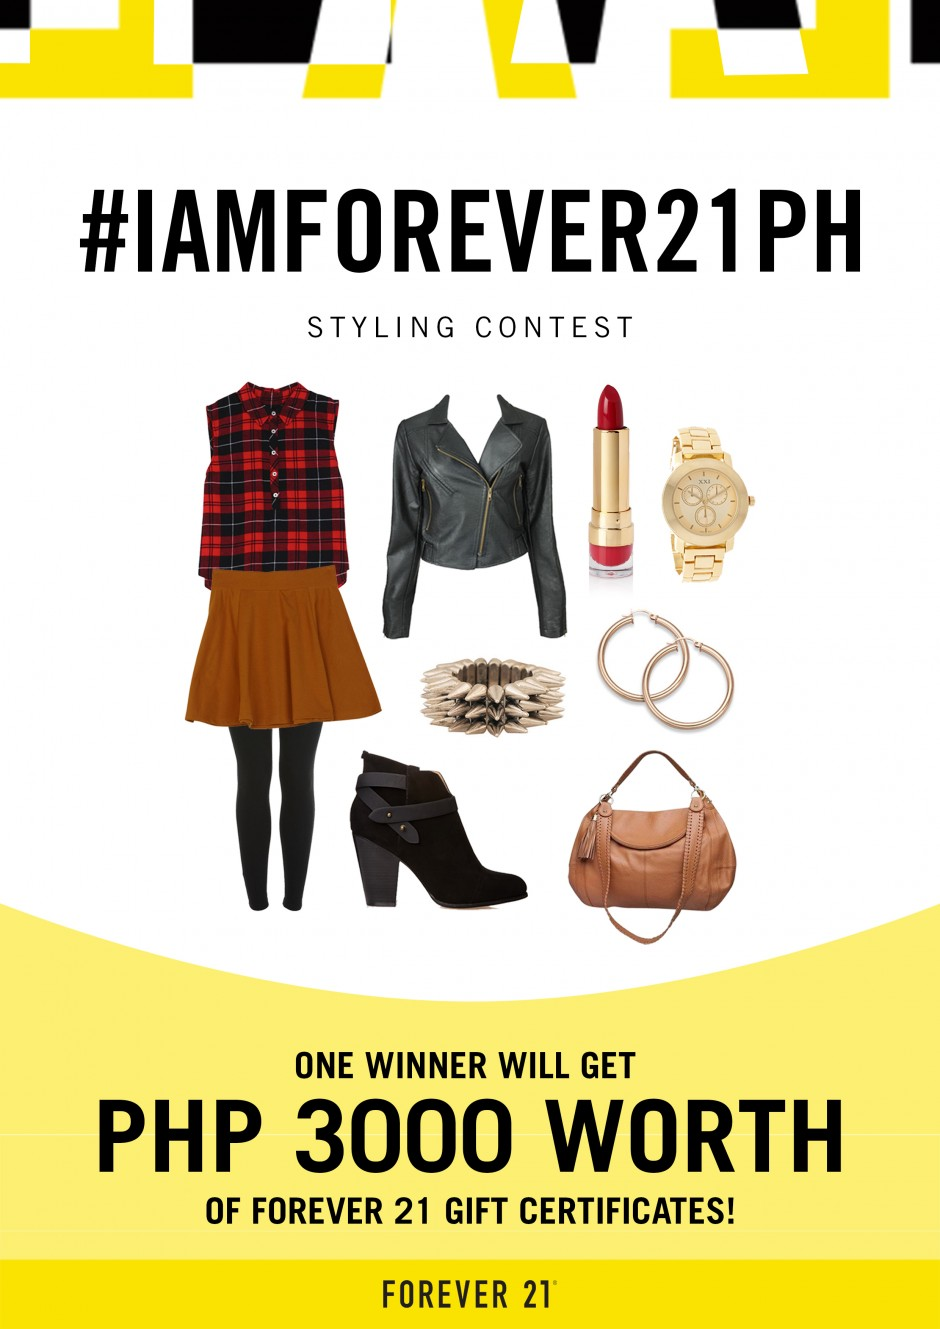 #IAmForever21PH Styling Contest Poster